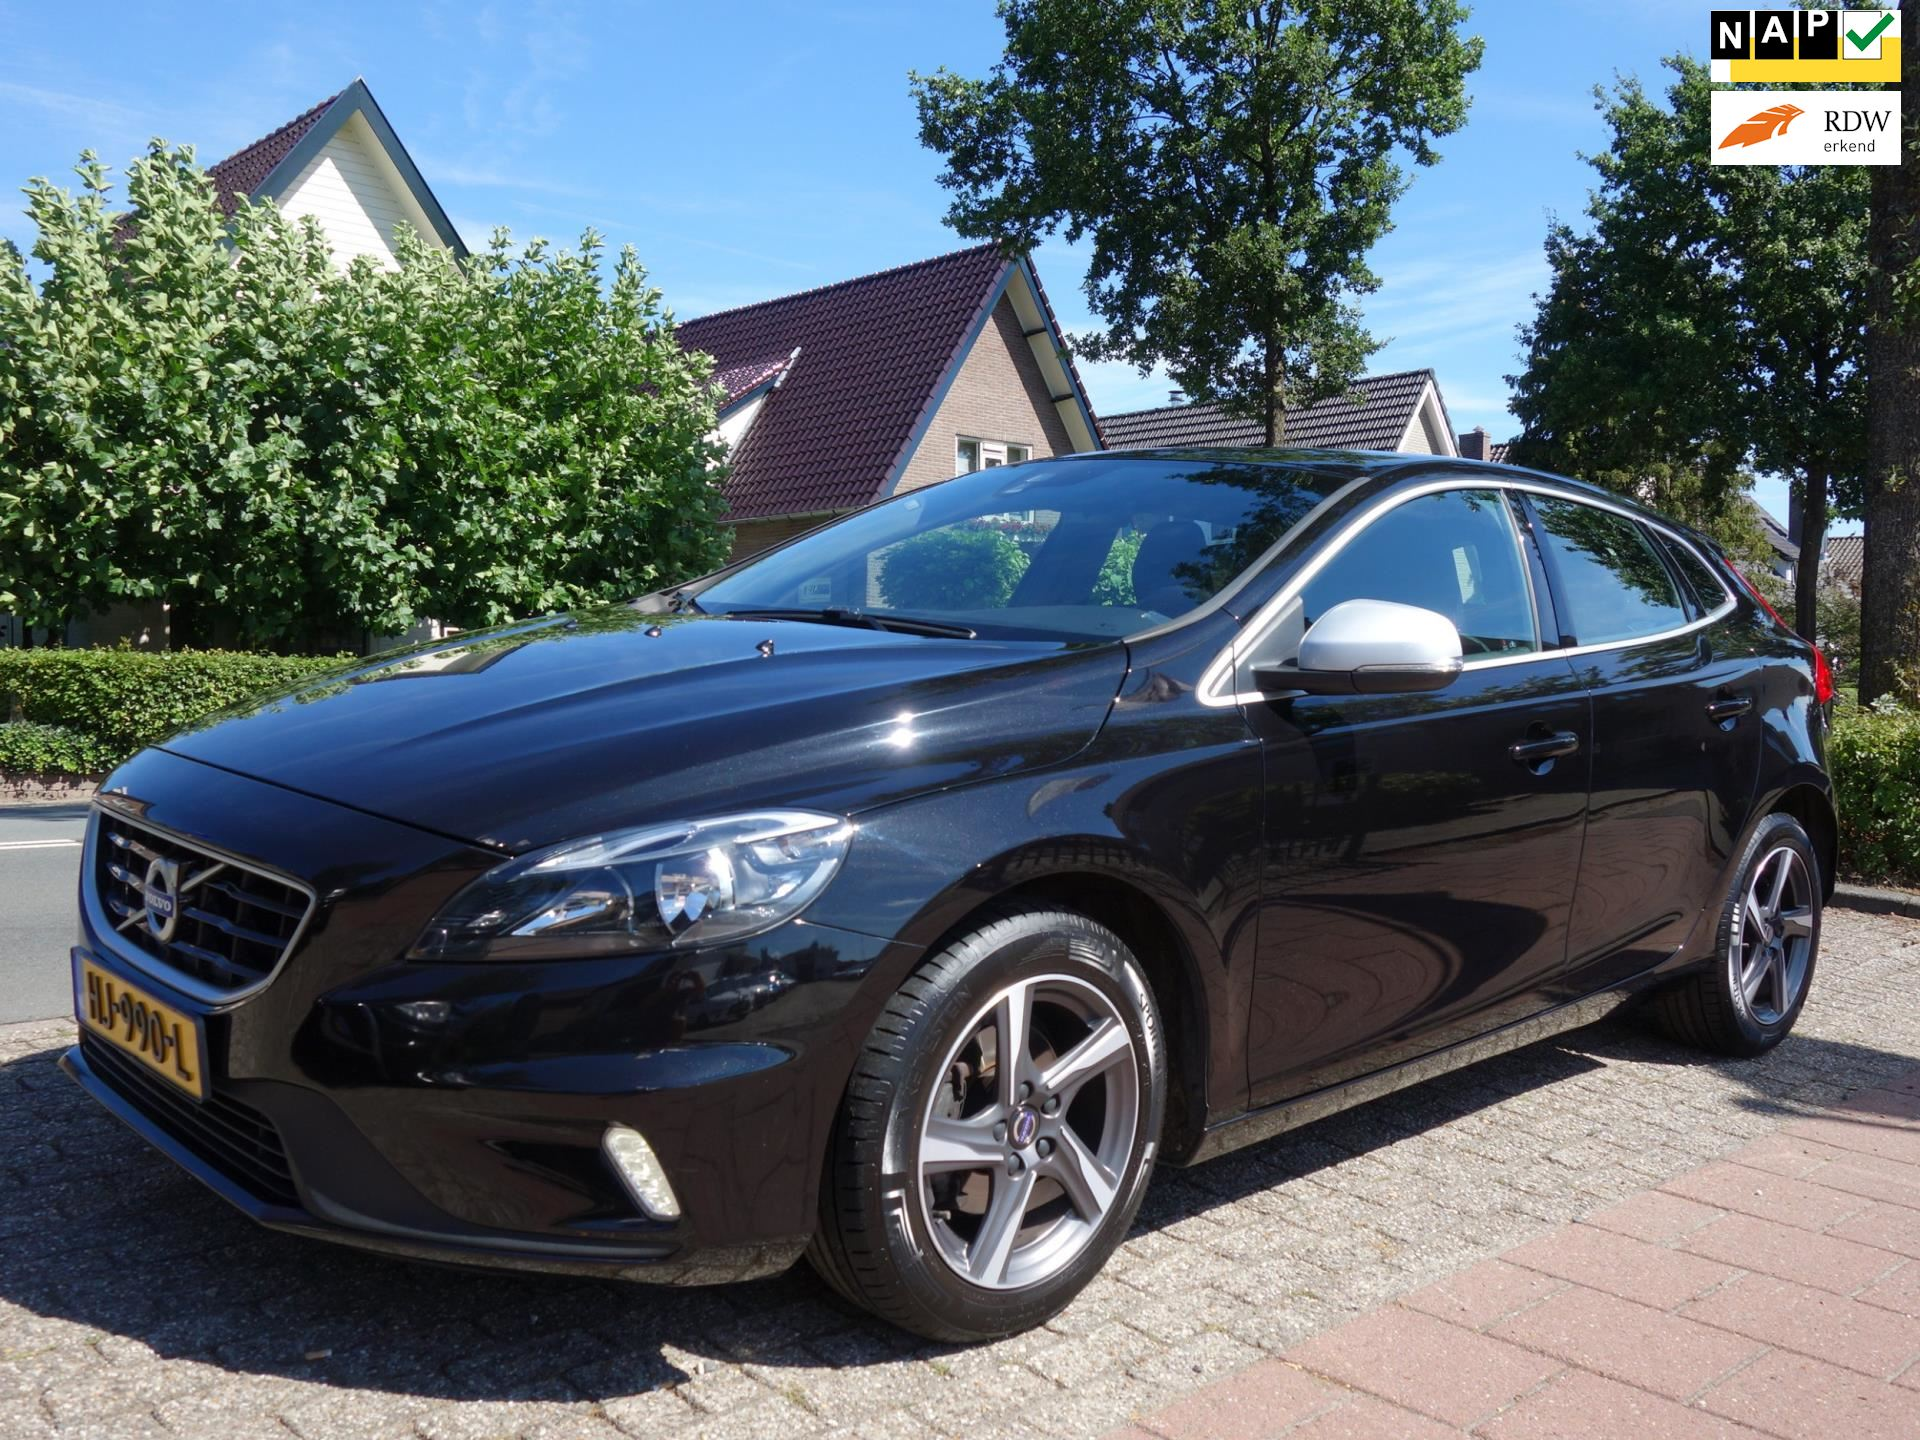 Volvo V40 occasion - De Vries Automotive Apeldoorn